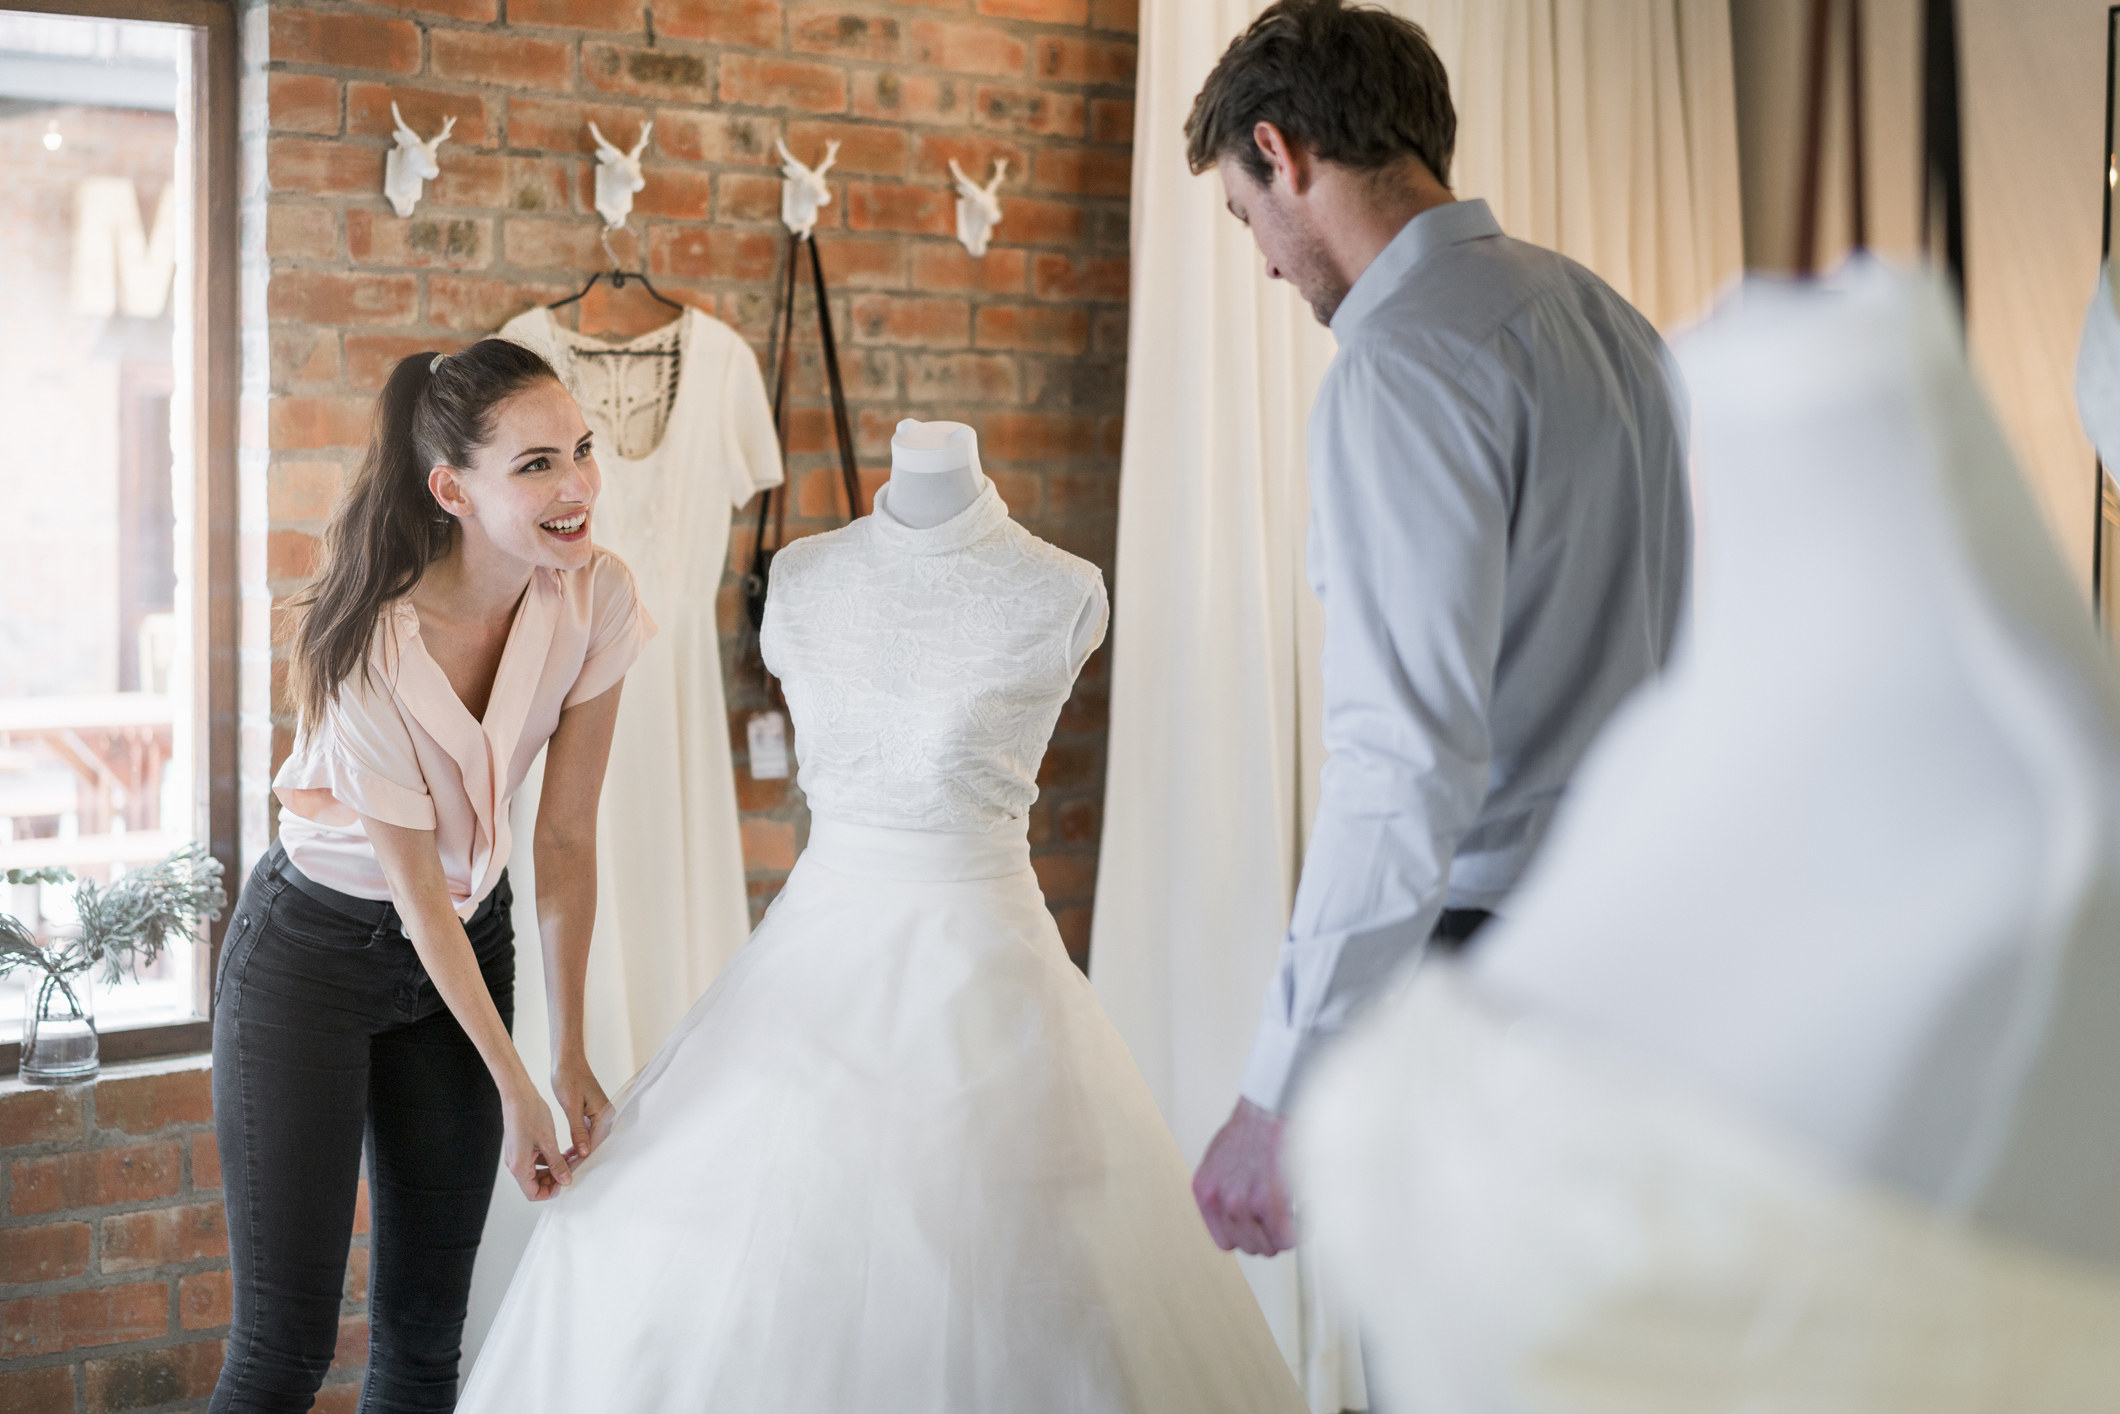 Woman and man admiring a wedding gown on a headless mannequin